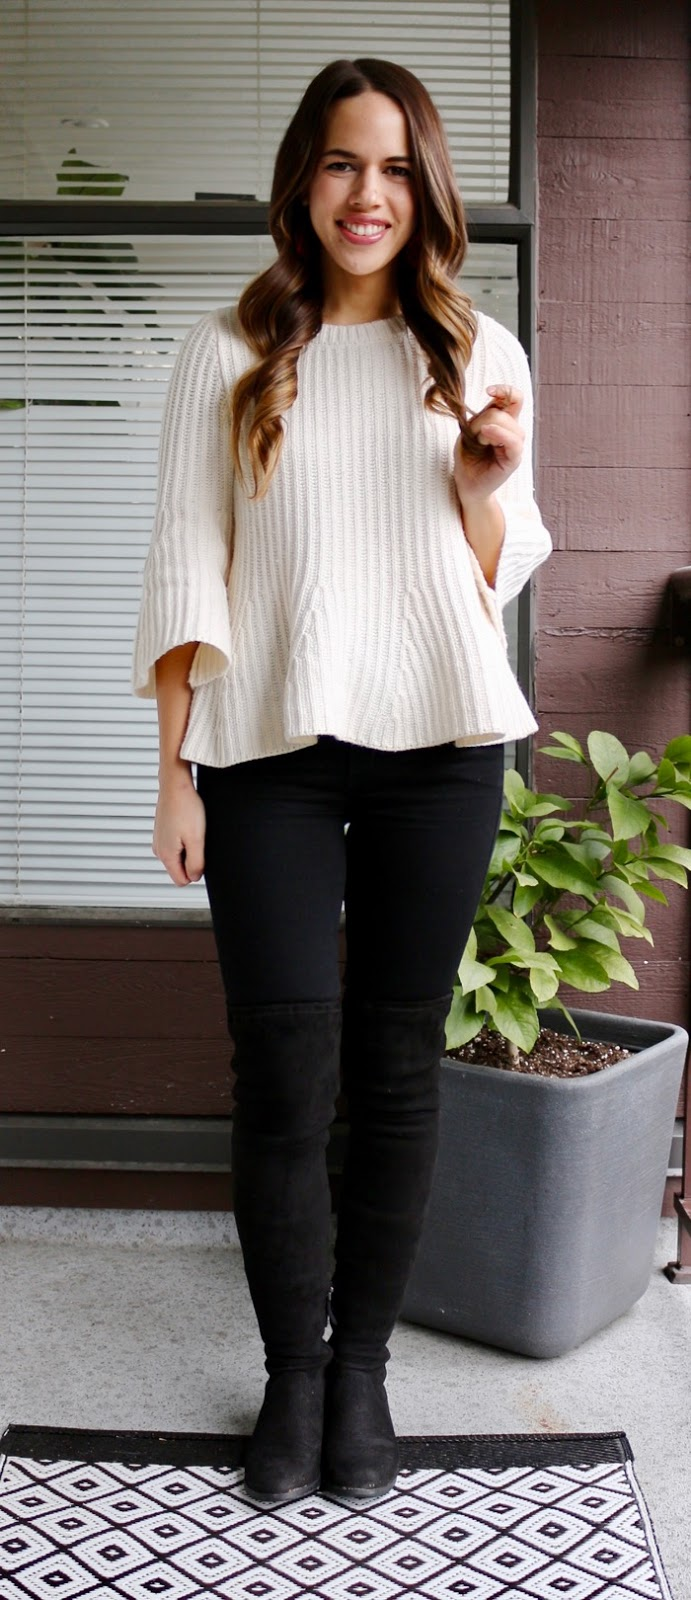 Jules in Flats - Peplum Sweater with OTK Boots for Work